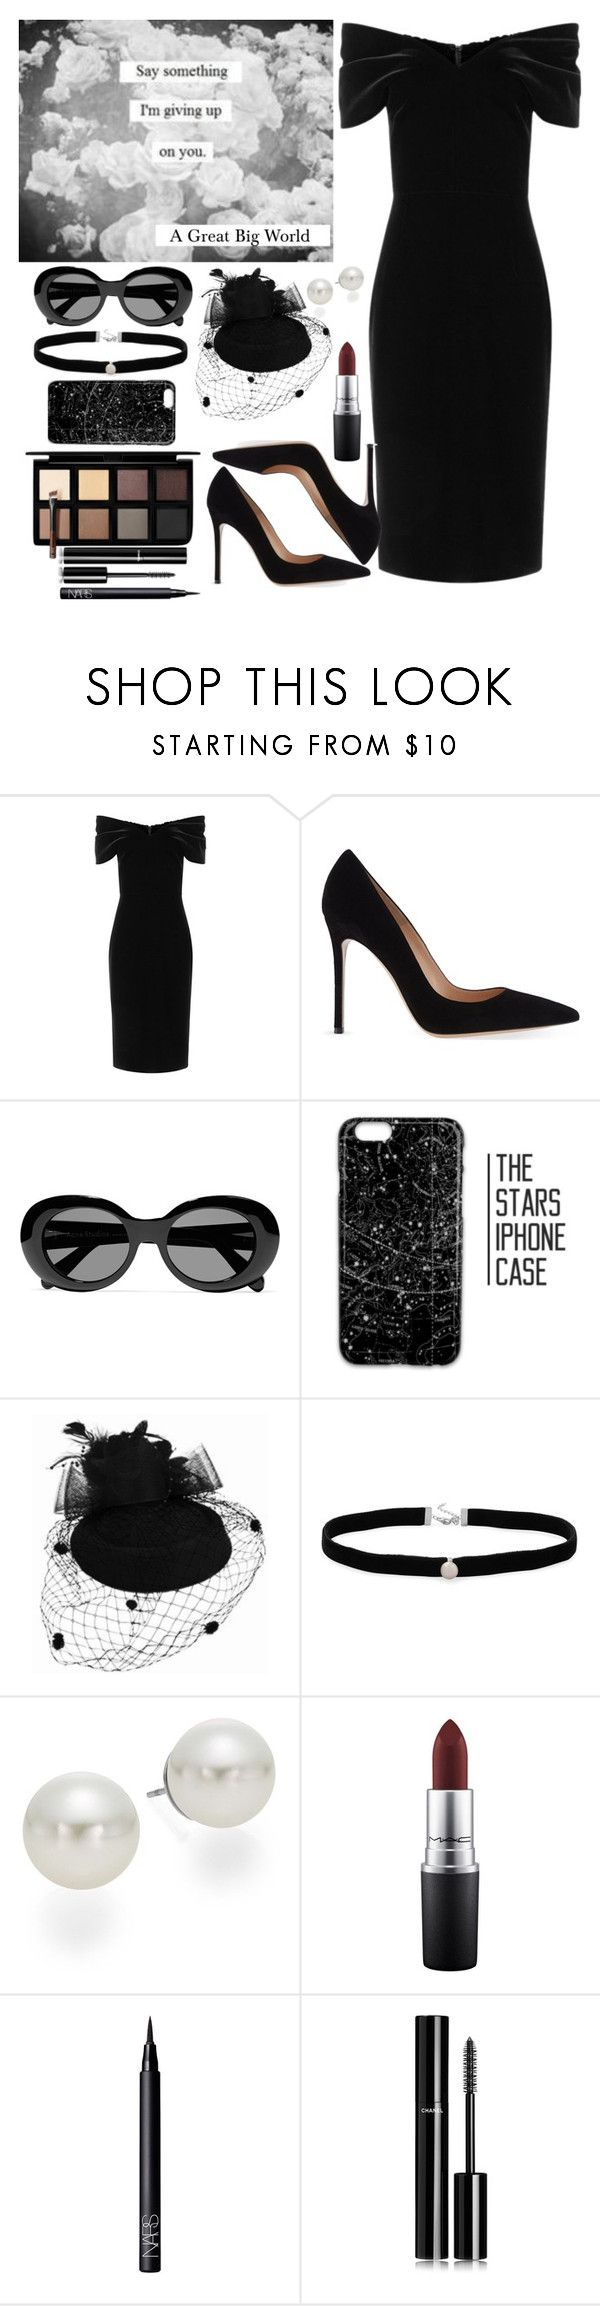 """Say Something - Funeral Wear"" by allyssister ❤ liked on Polyvore featuring Emilio De La Morena, Gianvito Rossi, Acne Studios, Amanda Rose Collection, AK Anne Klein, MAC Cosmetics, NARS Cosmetics, Chanel and Down to Earth"